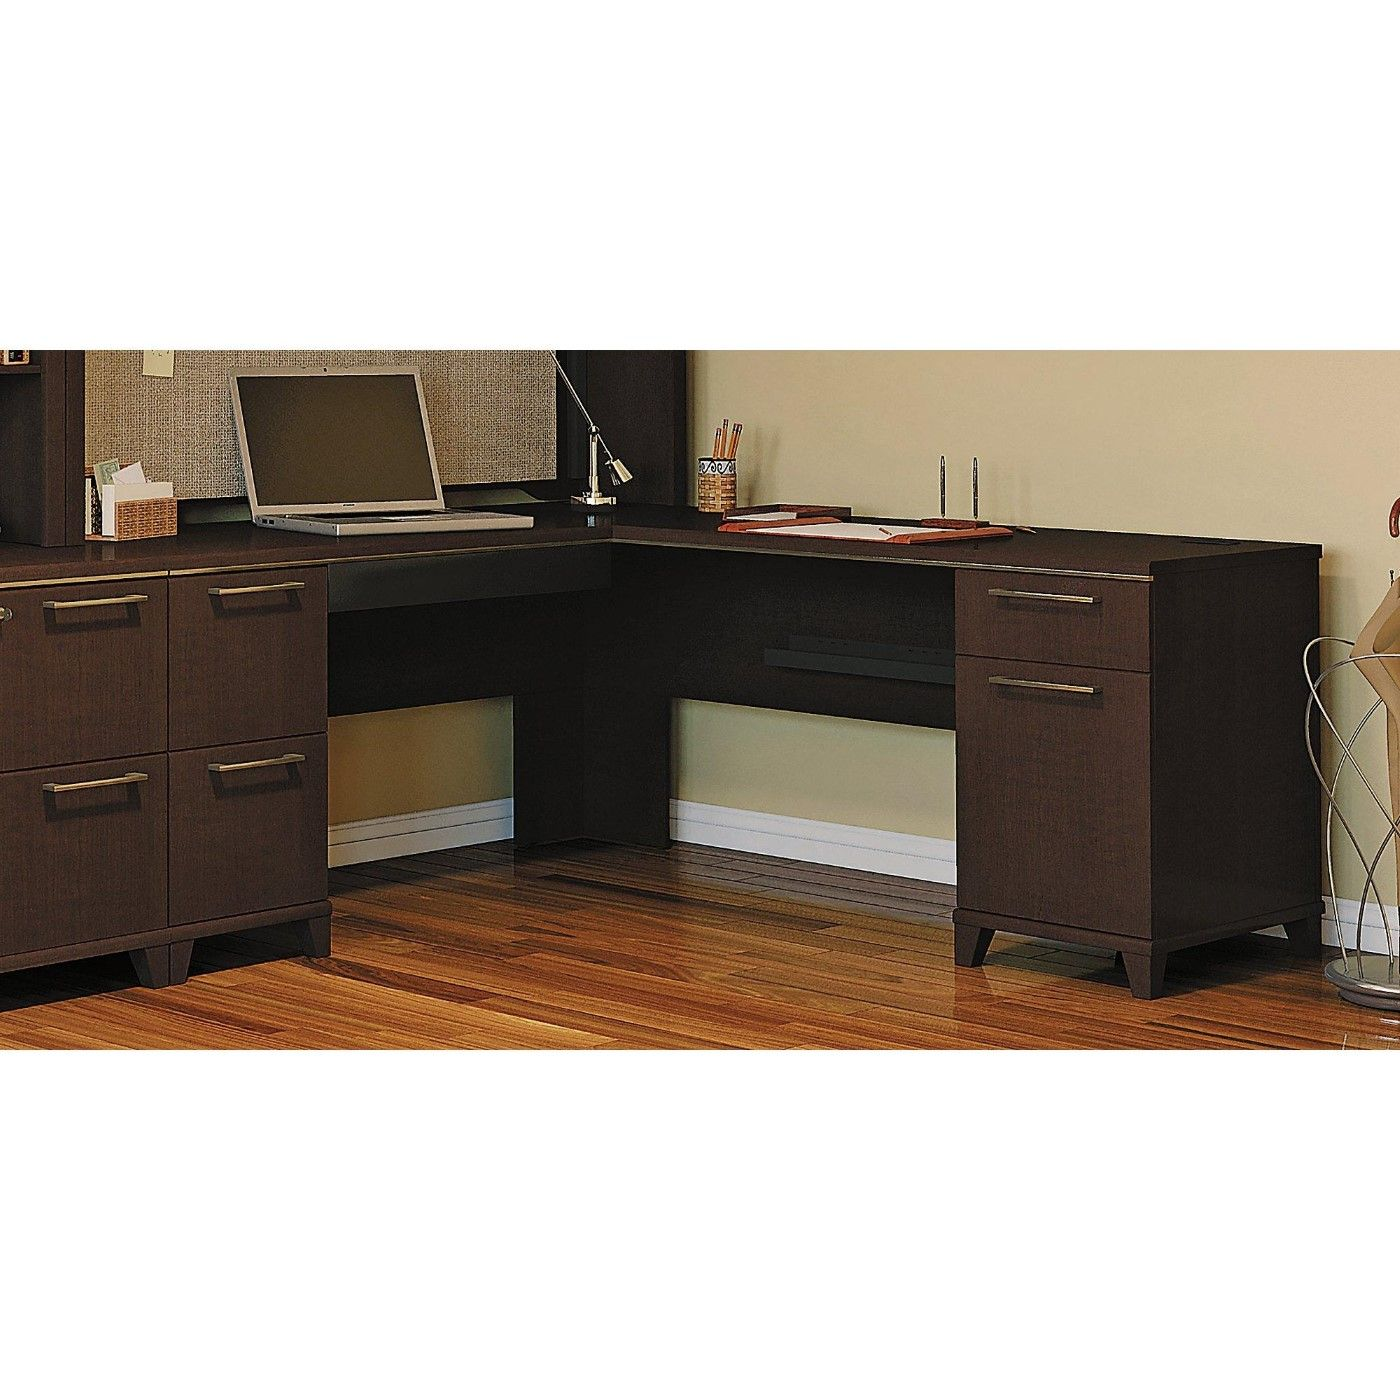 <font color=#c60><b>BUSH BUSINESS FURNITURE ENTERPRISE MOCHA CHERRY 72W x 72D L-SHAPED DESK #EH-2910MC-03K. FREE SHIPPING:</font></b>